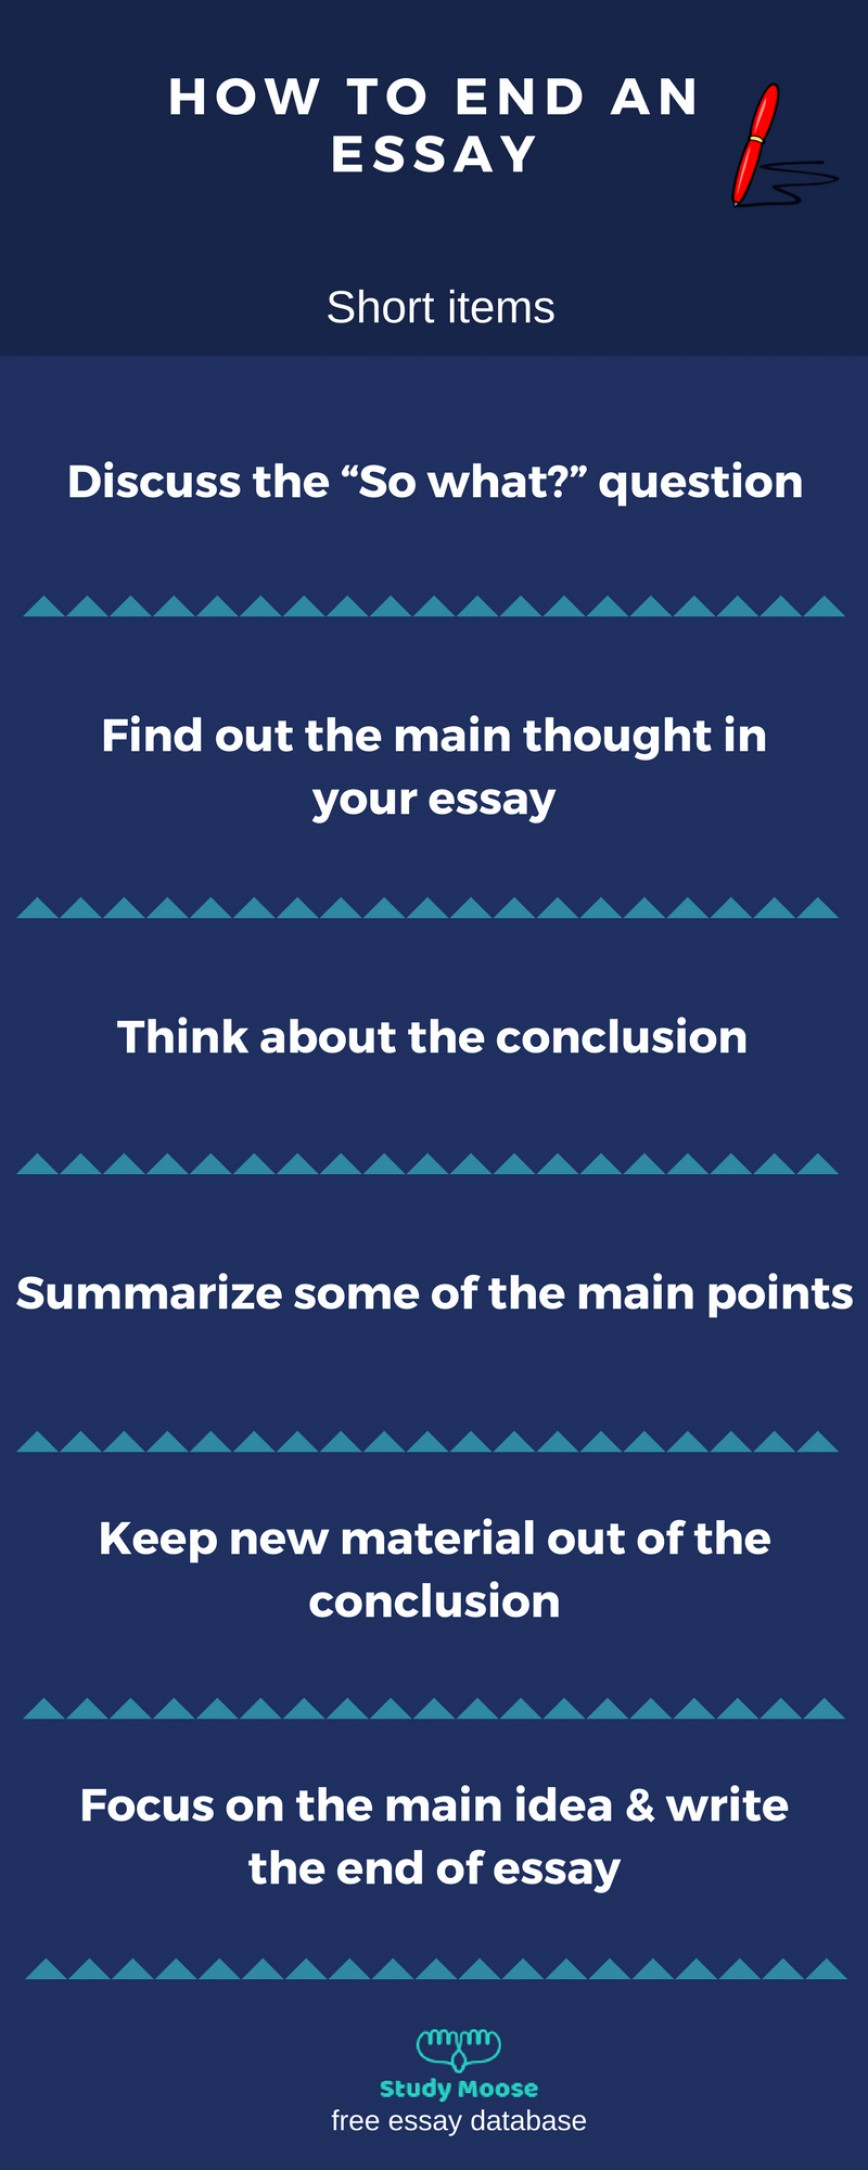 003 How To End An Essay Example Paragraph Outstanding A In Start Conclusion Persuasive Write For Evaluation